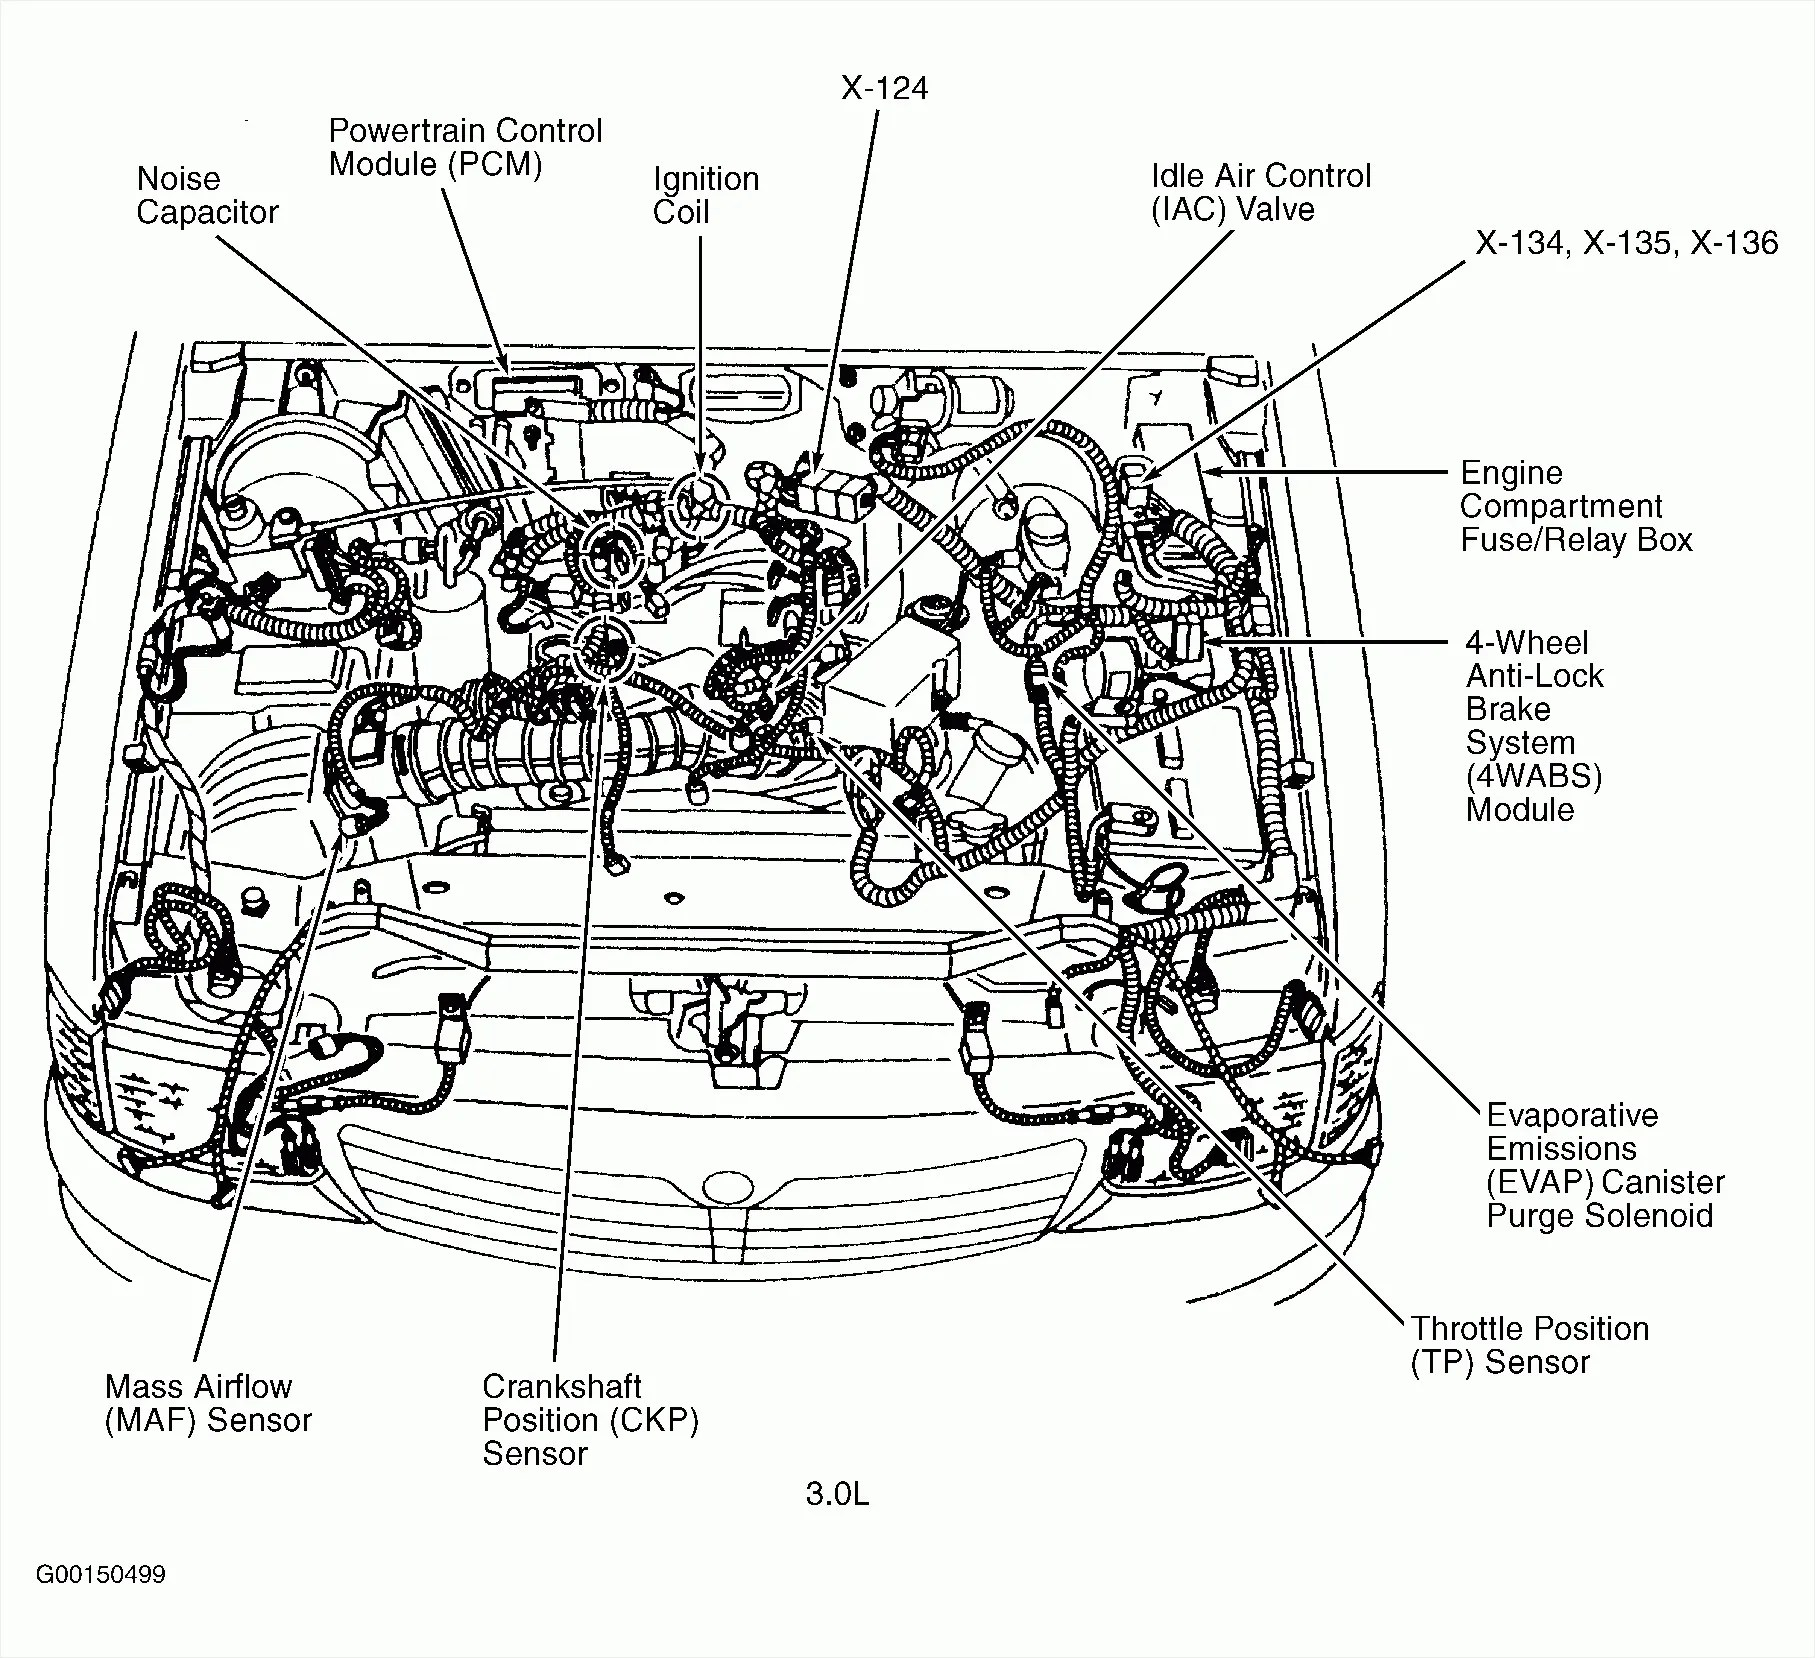 hight resolution of 1989 toyota pickup vacuum hose diagram likewise 2000 ford ranger 1991 toyota 4runner fuel pump wiring location furthermore ford 4 0 v6